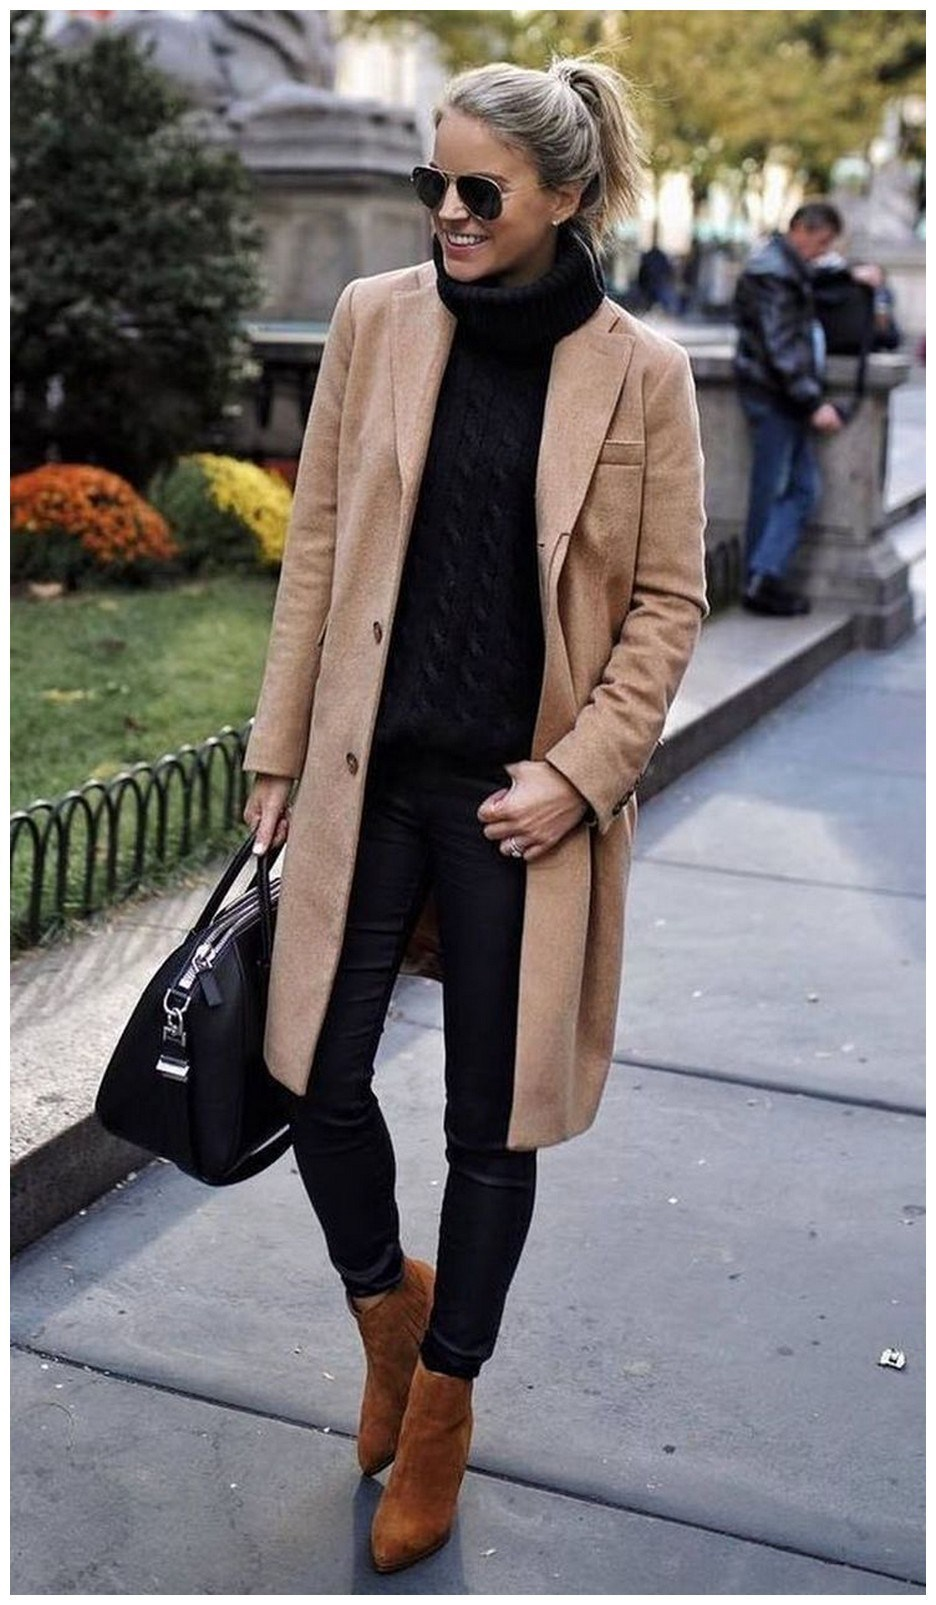 45+ trending winter outfits to copy right now 49